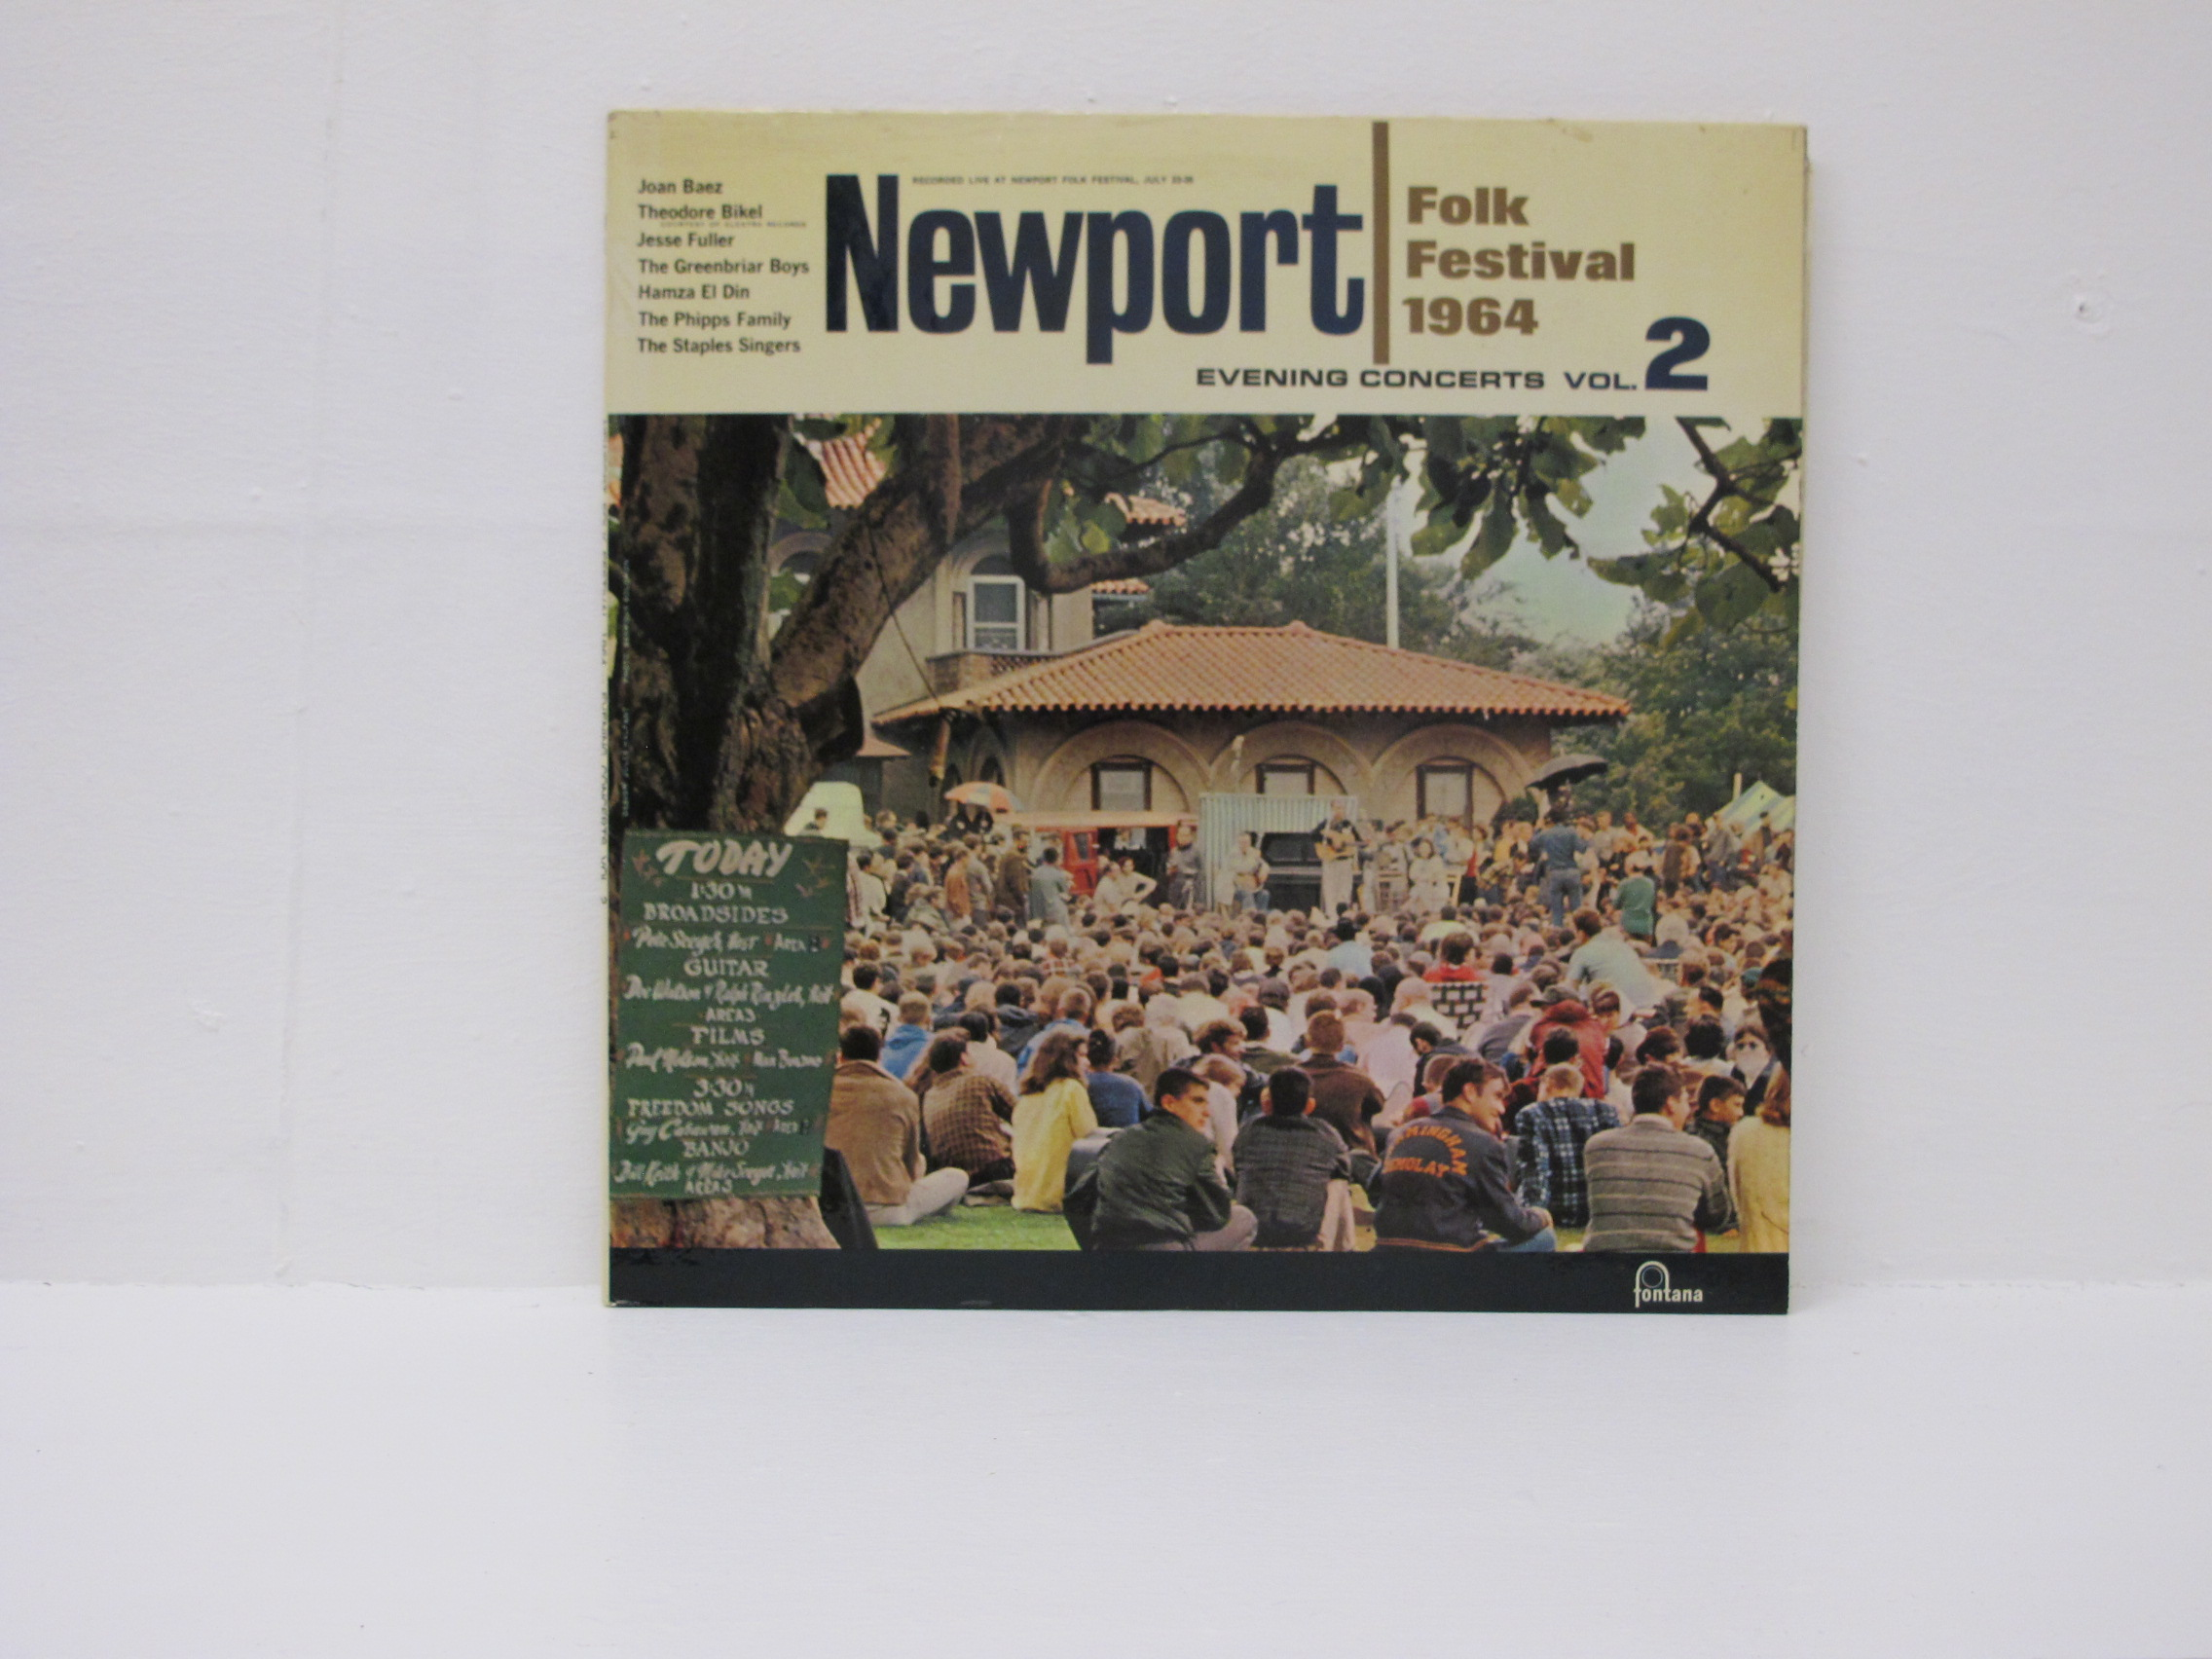 The Newport Folk Festival 1964 - Vol 2